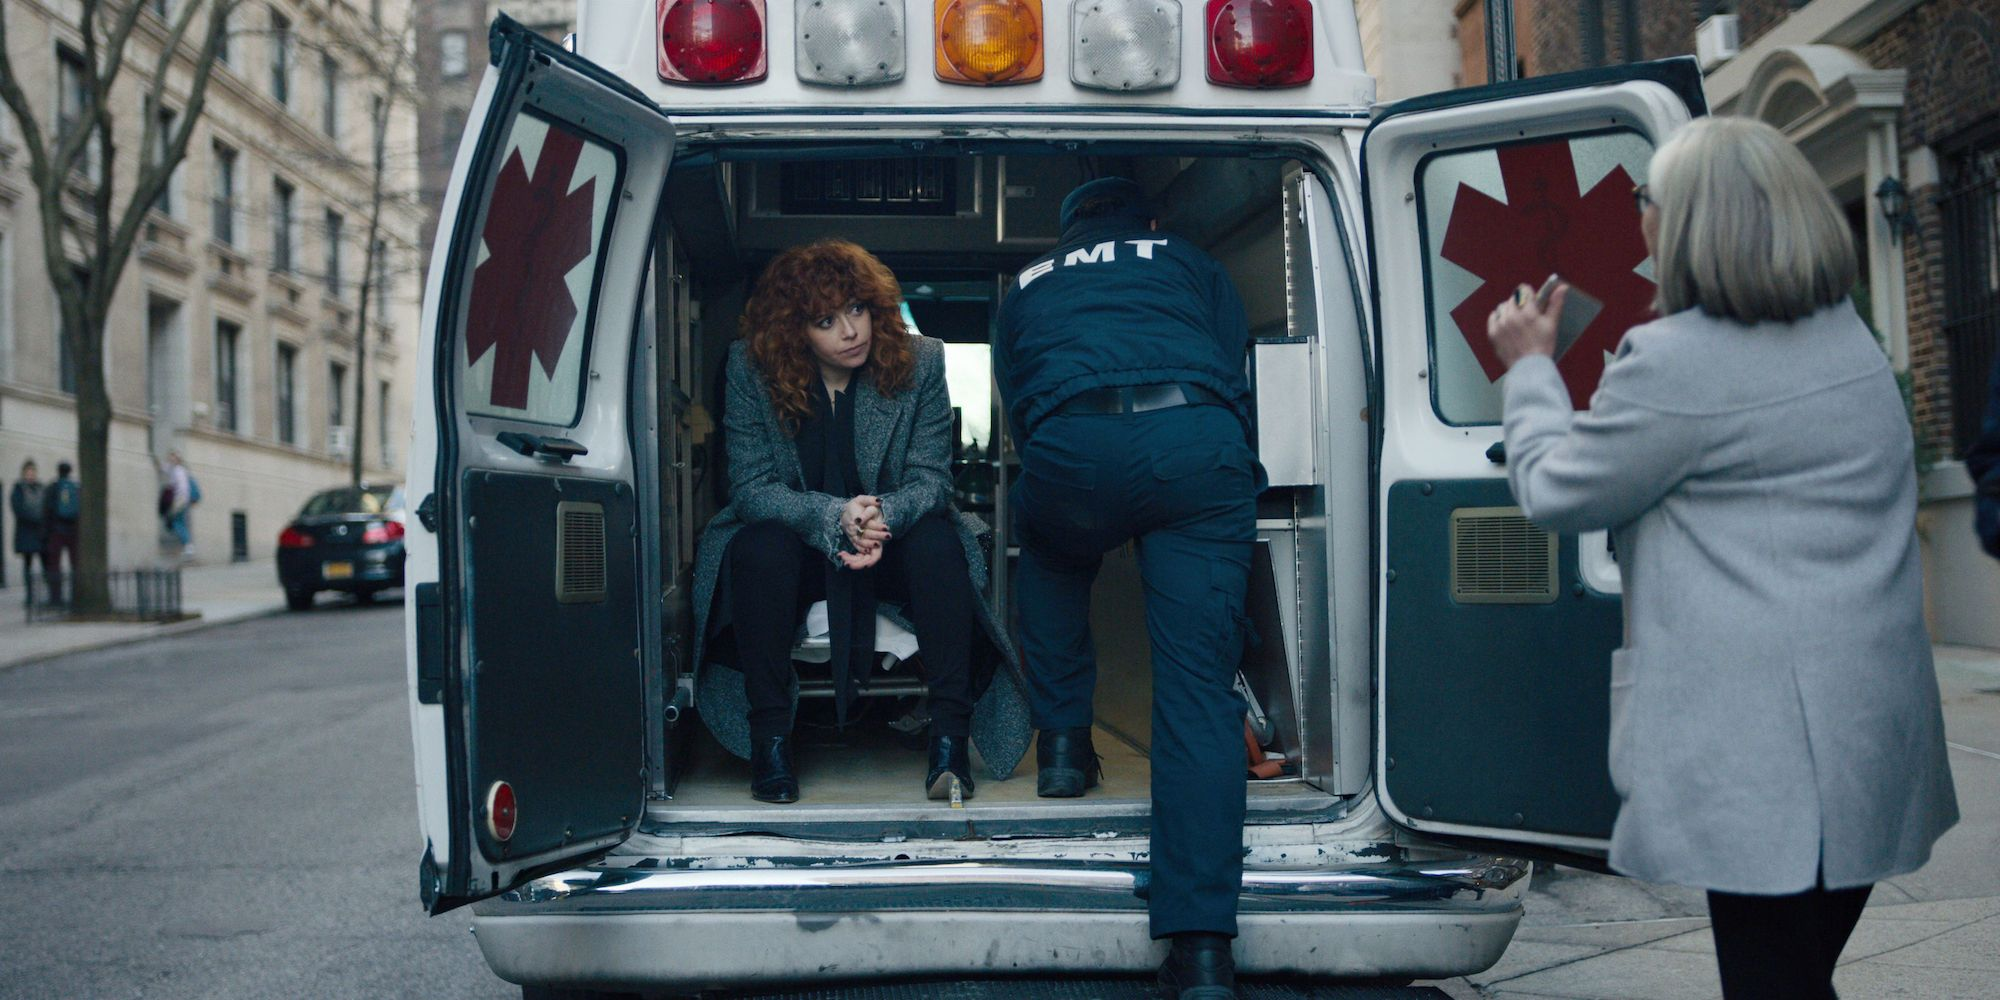 Russian Doll: Season Two Renewal for Netflix Drama Series